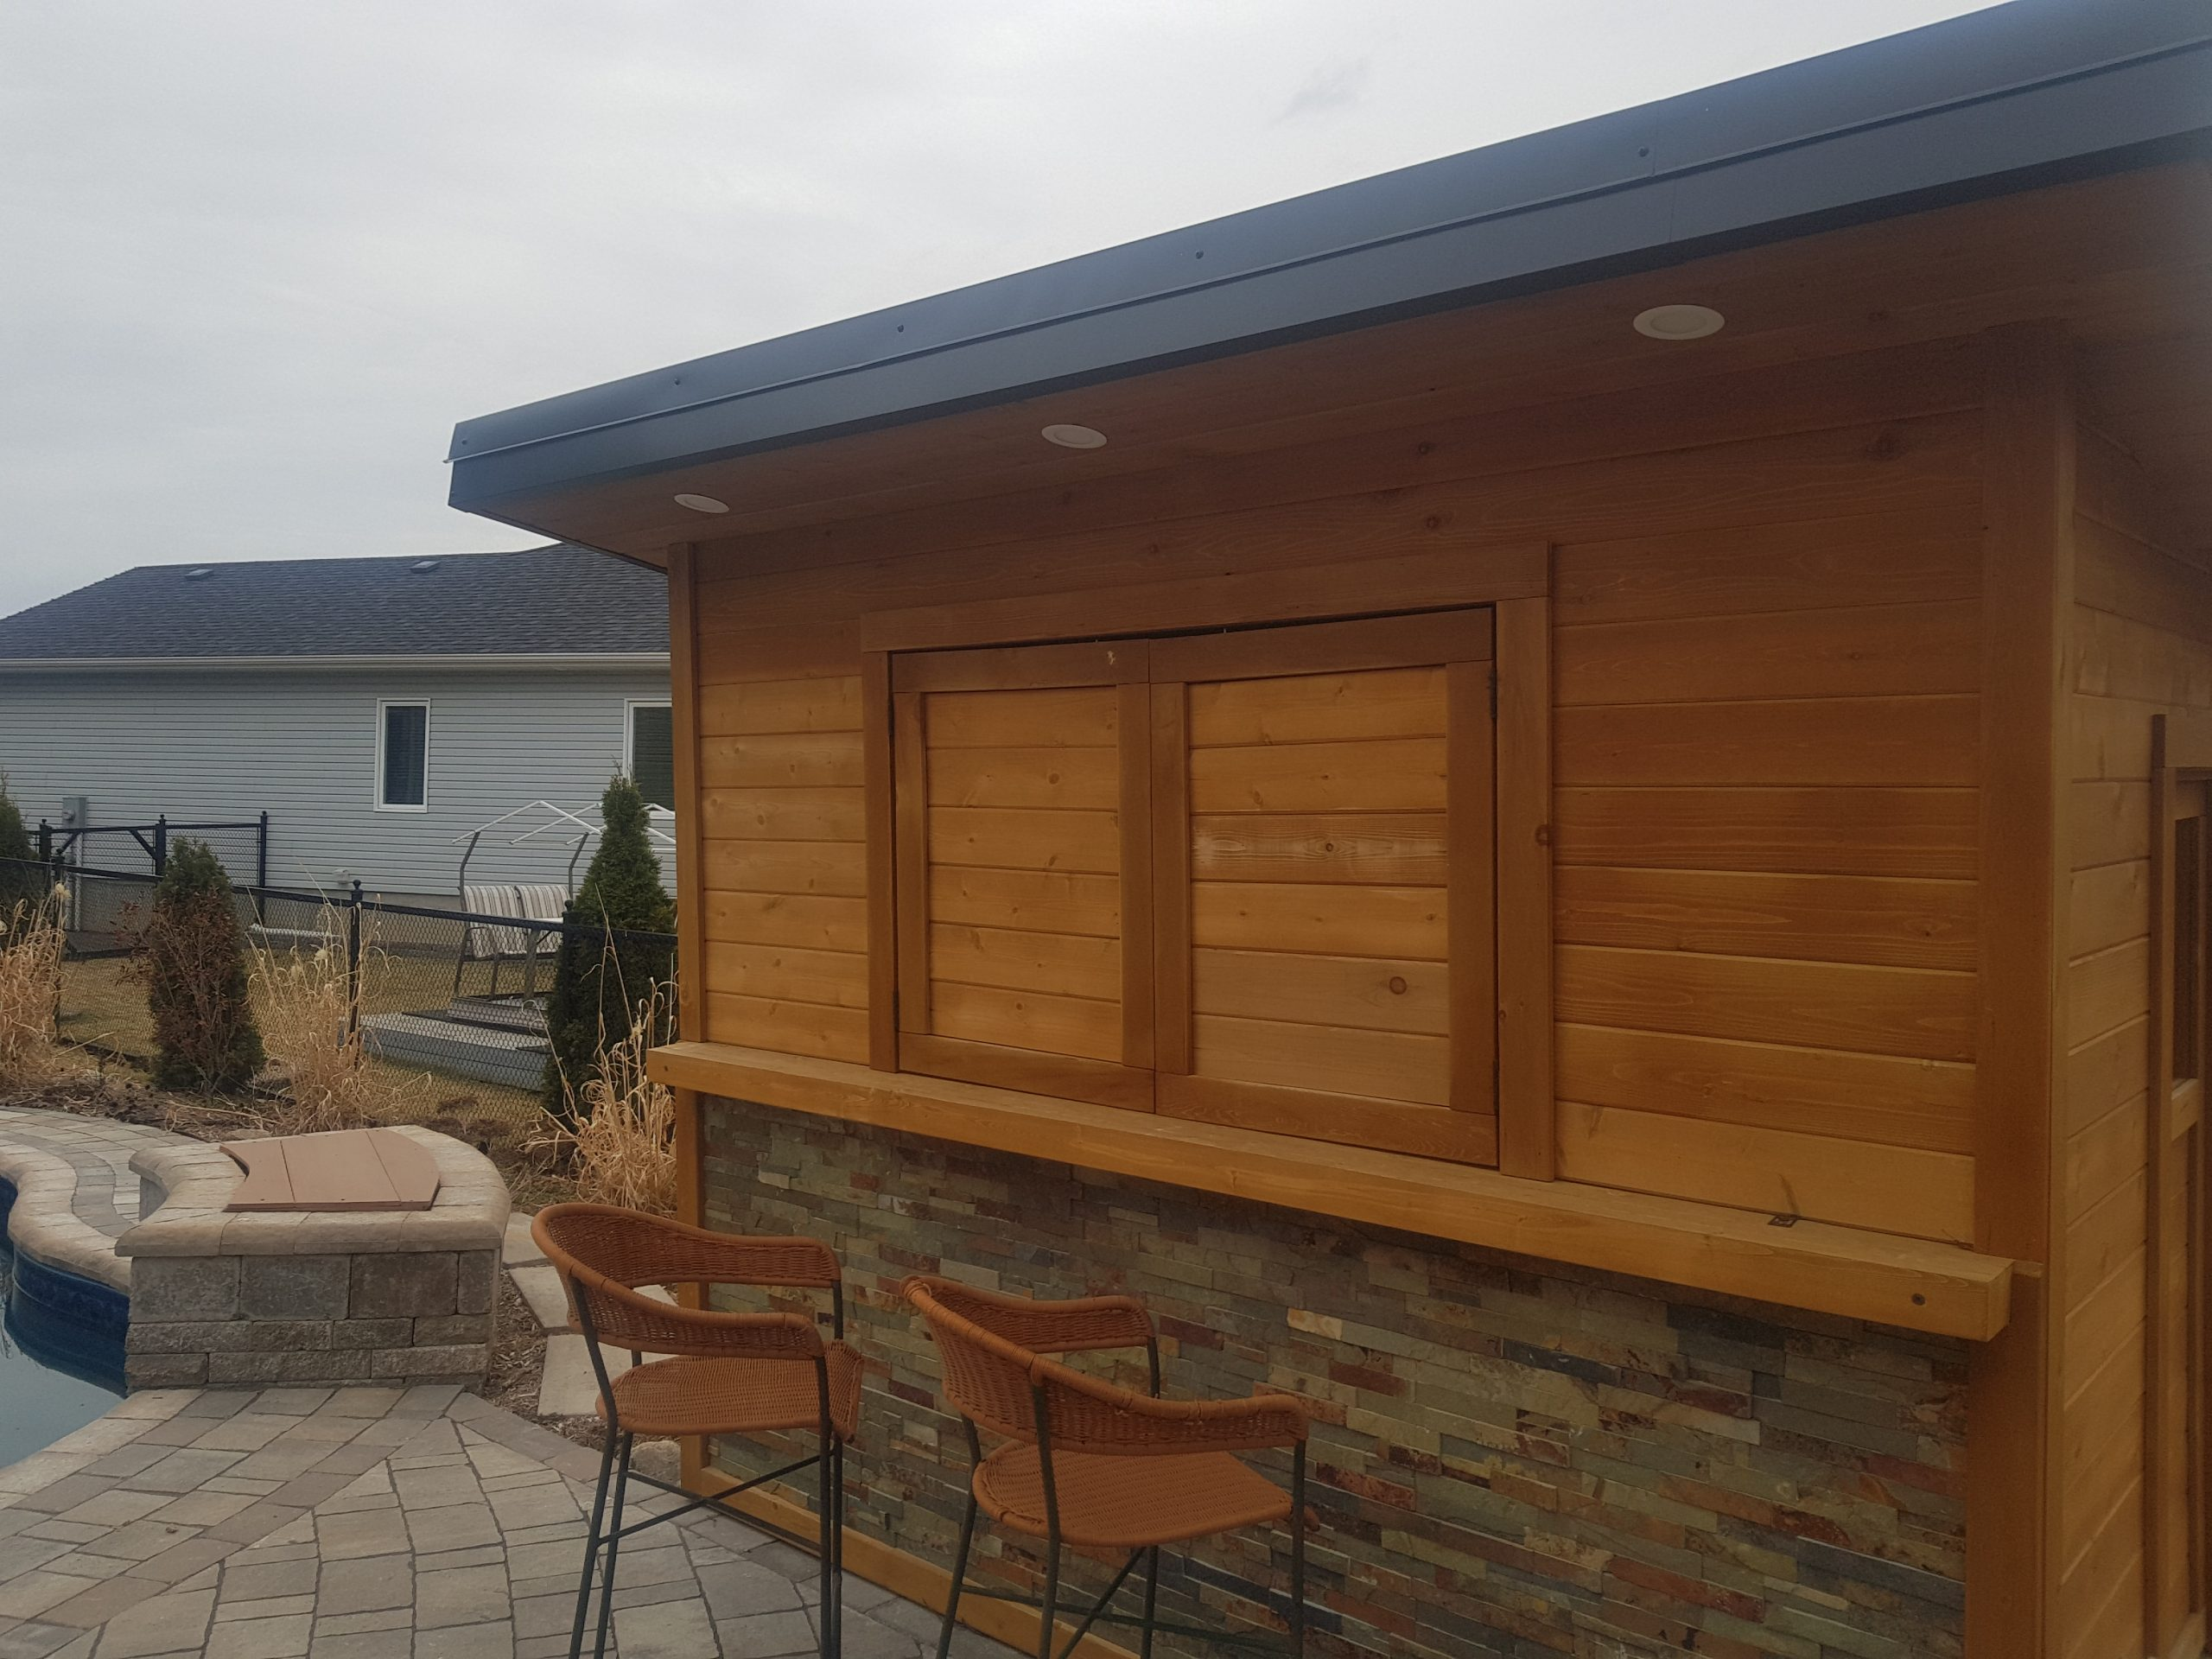 Pools Hot Tubs Sheds And Landscaping Bry Electric Electricians Log Home Wiring We Can Also Make Sure You Have Sufficient Power For All Components Your Inground Pool Including Pump Lights Heater